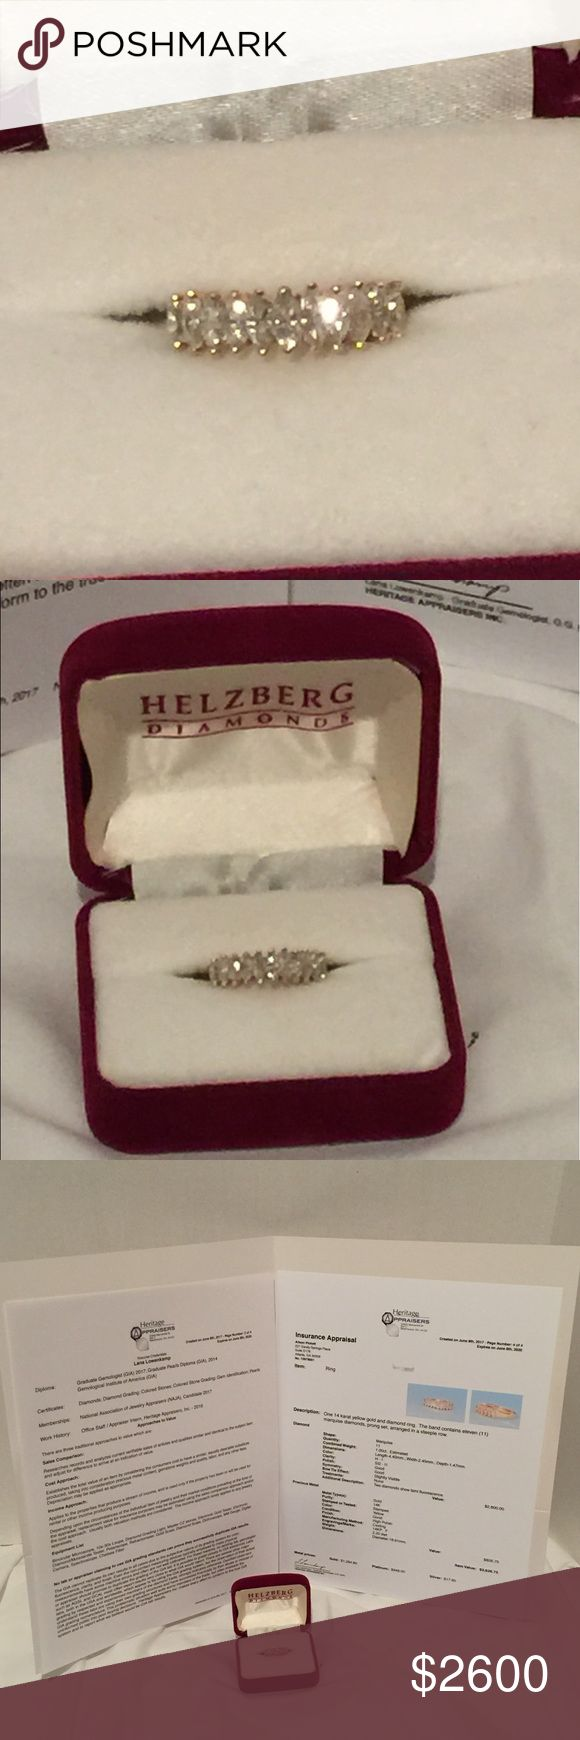 Marquis Diamond 14k Ring Band Steeple Row Exquisite marquis diamond 14k ring. Vintage Helzbergs. 11 brilliant sparkling marquis diamonds set in steeple row fashion.Professional appraisal just done in this ring and appraisal good to 2020.  Total Value: $3,626.75 Diamonds - 11 1.00 tcw est. Set in steeple row prong set  dimensions: 4.4 cm x 2.45cm x 1.47cm Color: H - I Clarity: SI2 - I1 Cut. Marquis Value of Diamonds: $2,800.00 Metal type: Gold Purity: 14K Color: Yellow Marks: 14KP. F Weight…